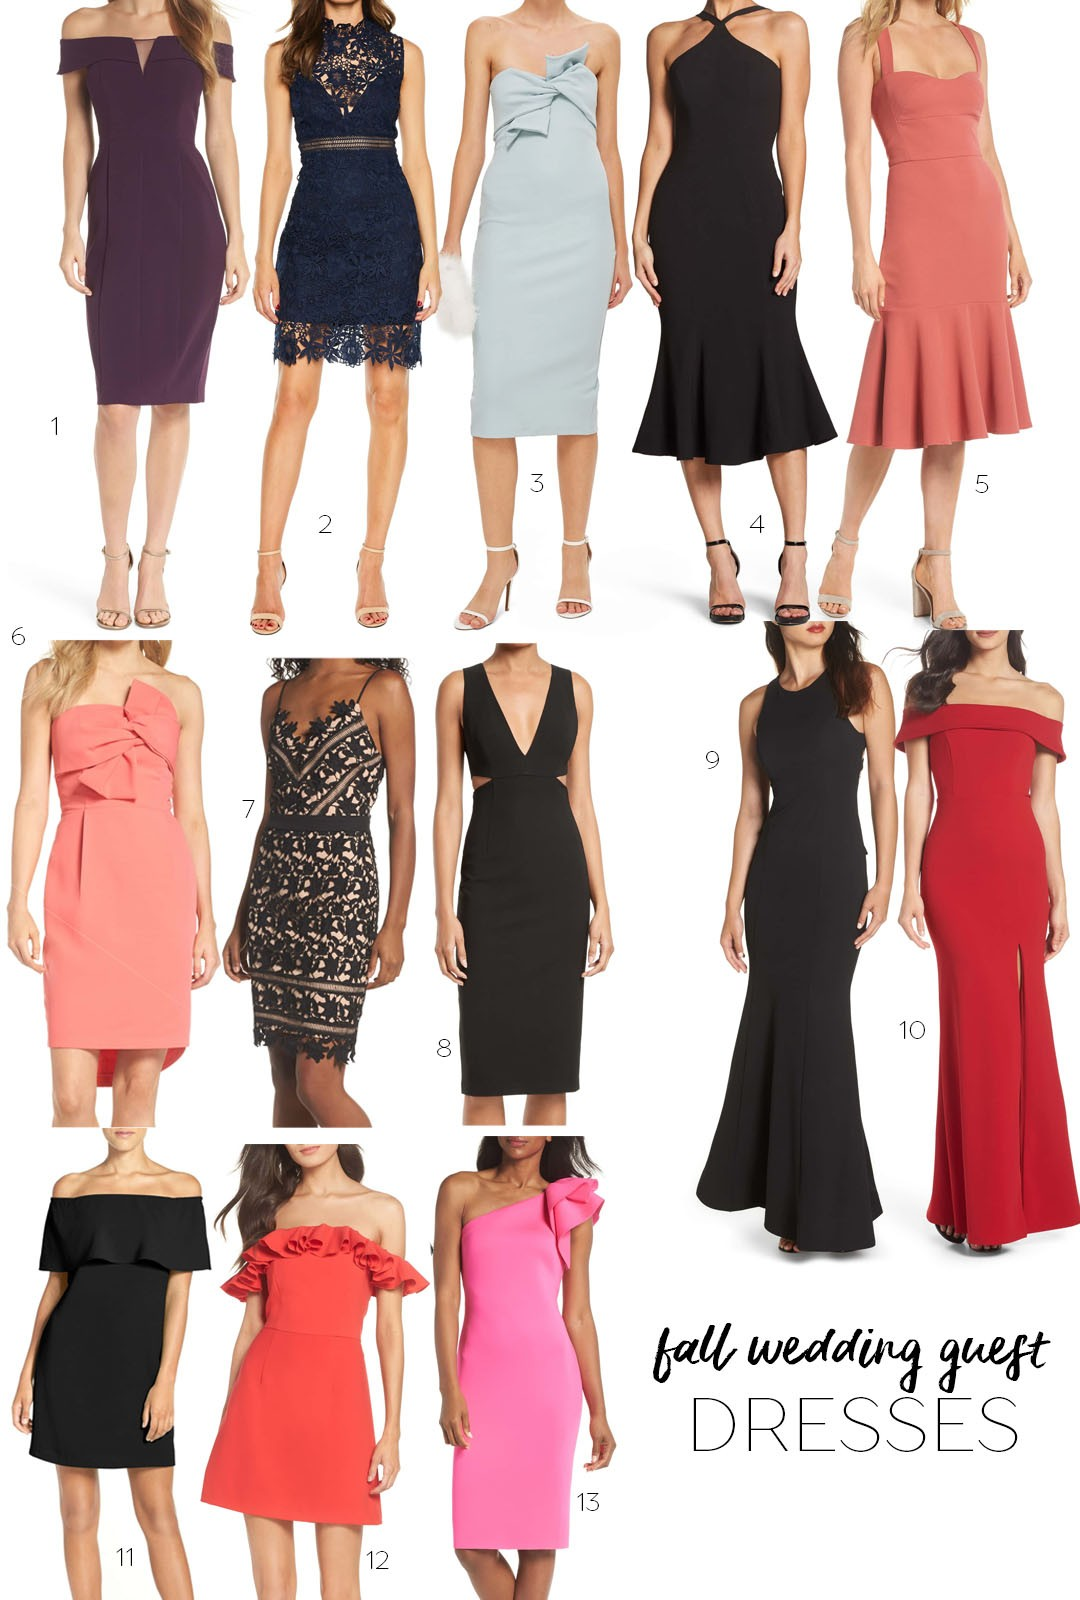 Fall Wedding Guest Dresses - A Double Dose